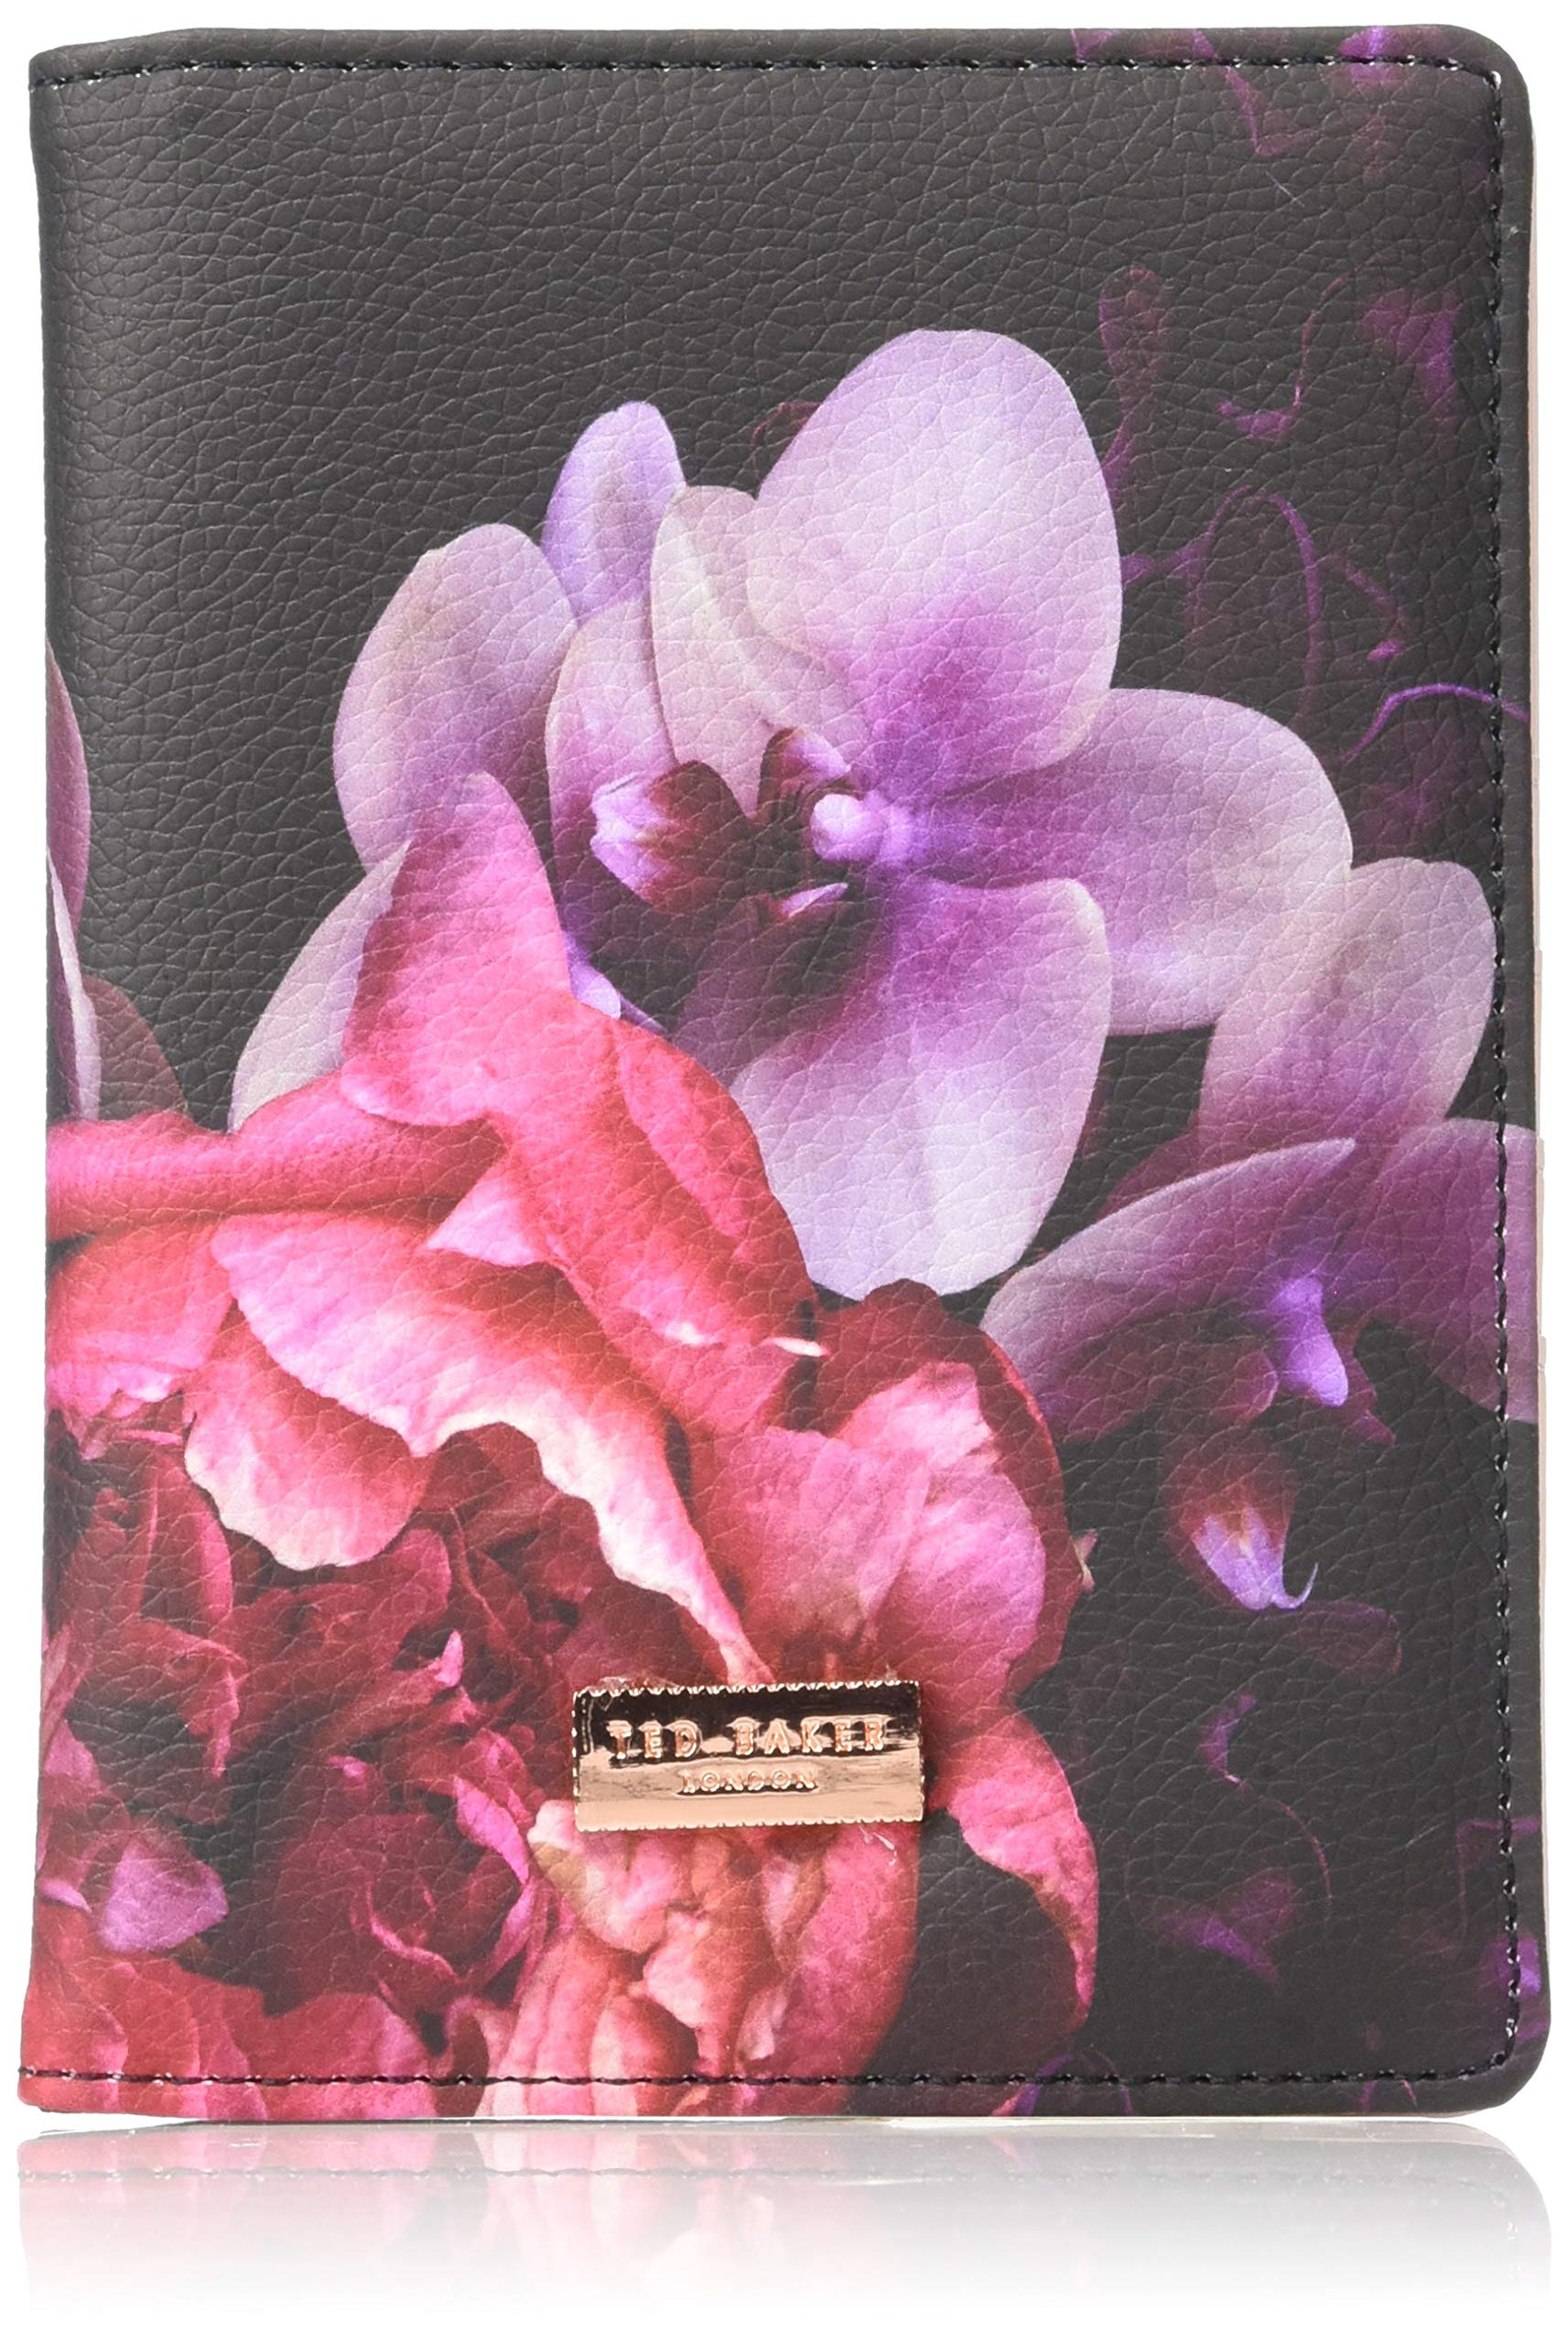 Ted Baker ATED398 Splendor Pink Floral Luxury Faux Leather Travel Document and Passport Holder, Multi by Ted Baker